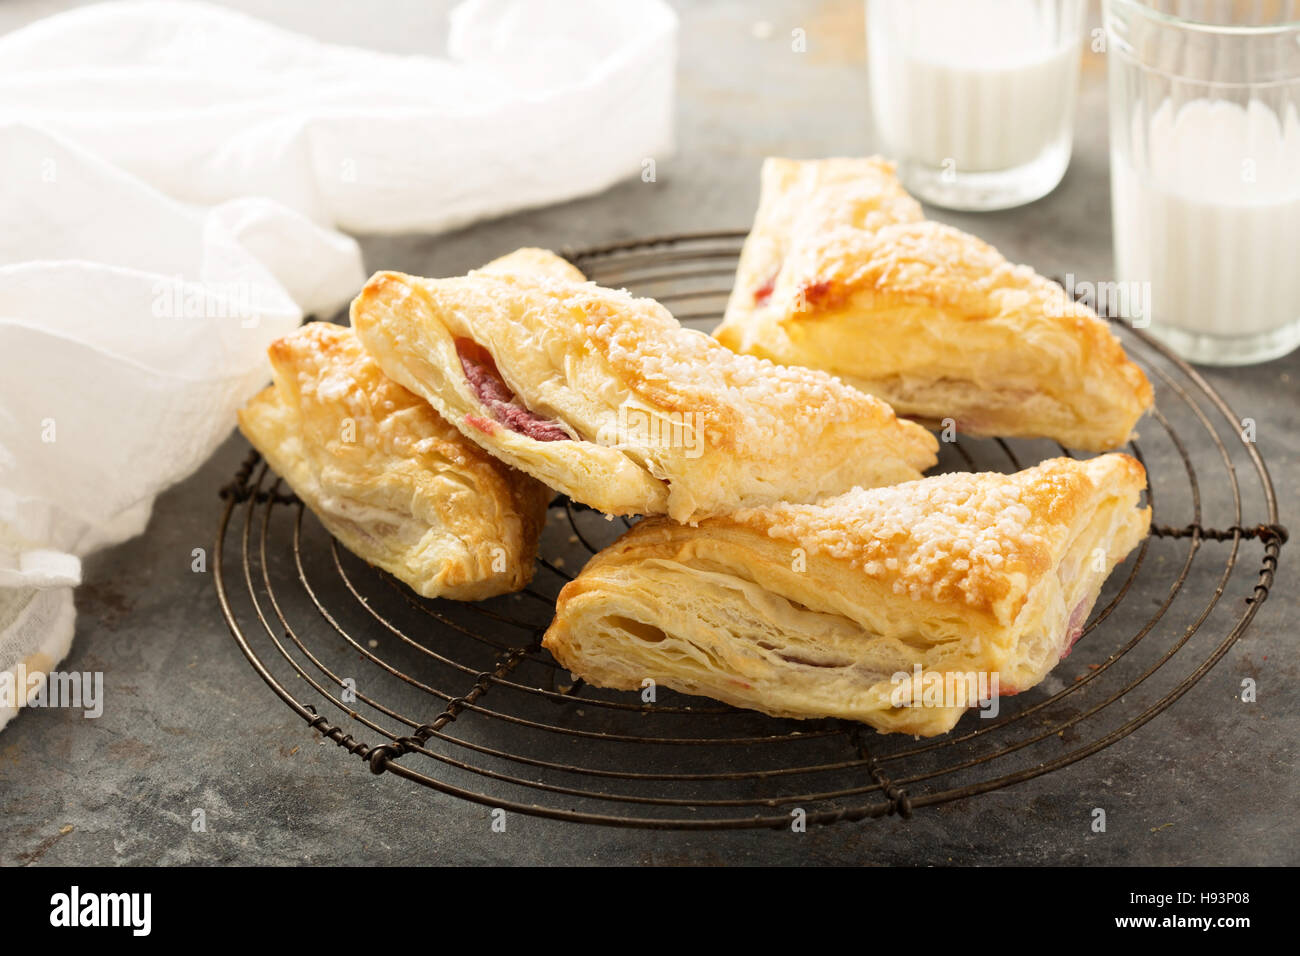 Puff pastry with cherry filling - Stock Image